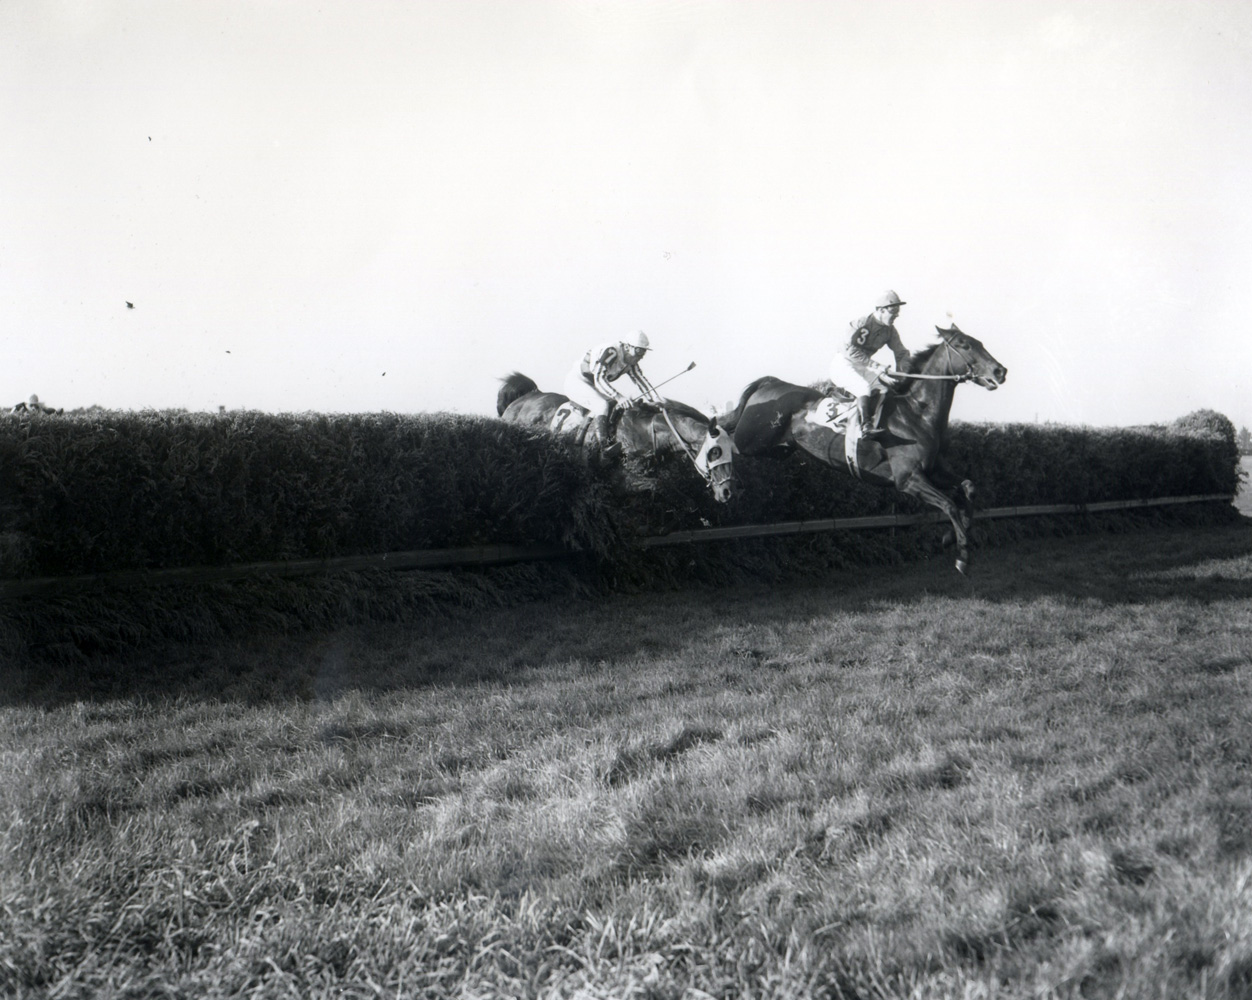 Oedipus (Albert Foot up) clearing a jump on his way to win the 1951 Grand National at Belmont Park (Keeneland Library Morgan Collection/Museum Collection)